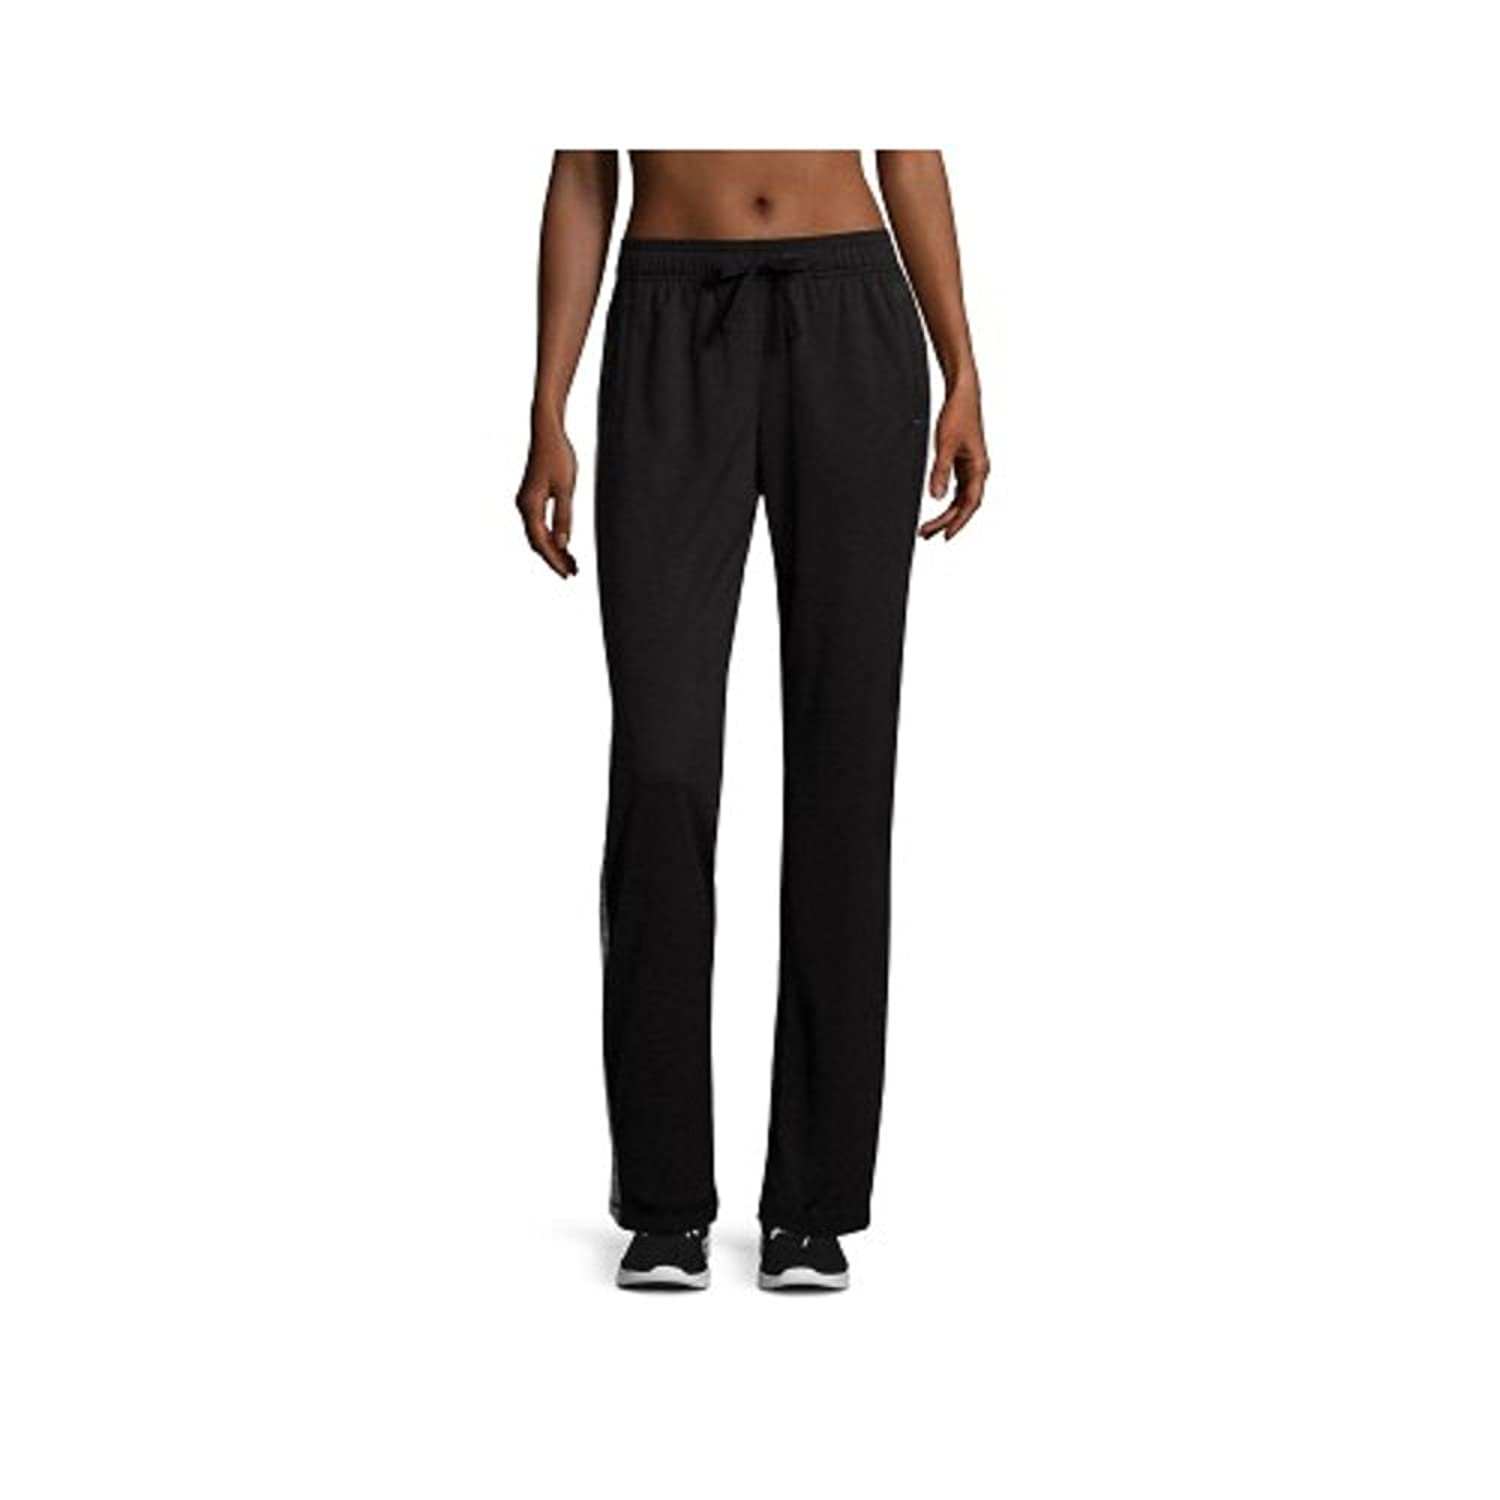 Made For Life Mesh Pants Size PXL Black Rose